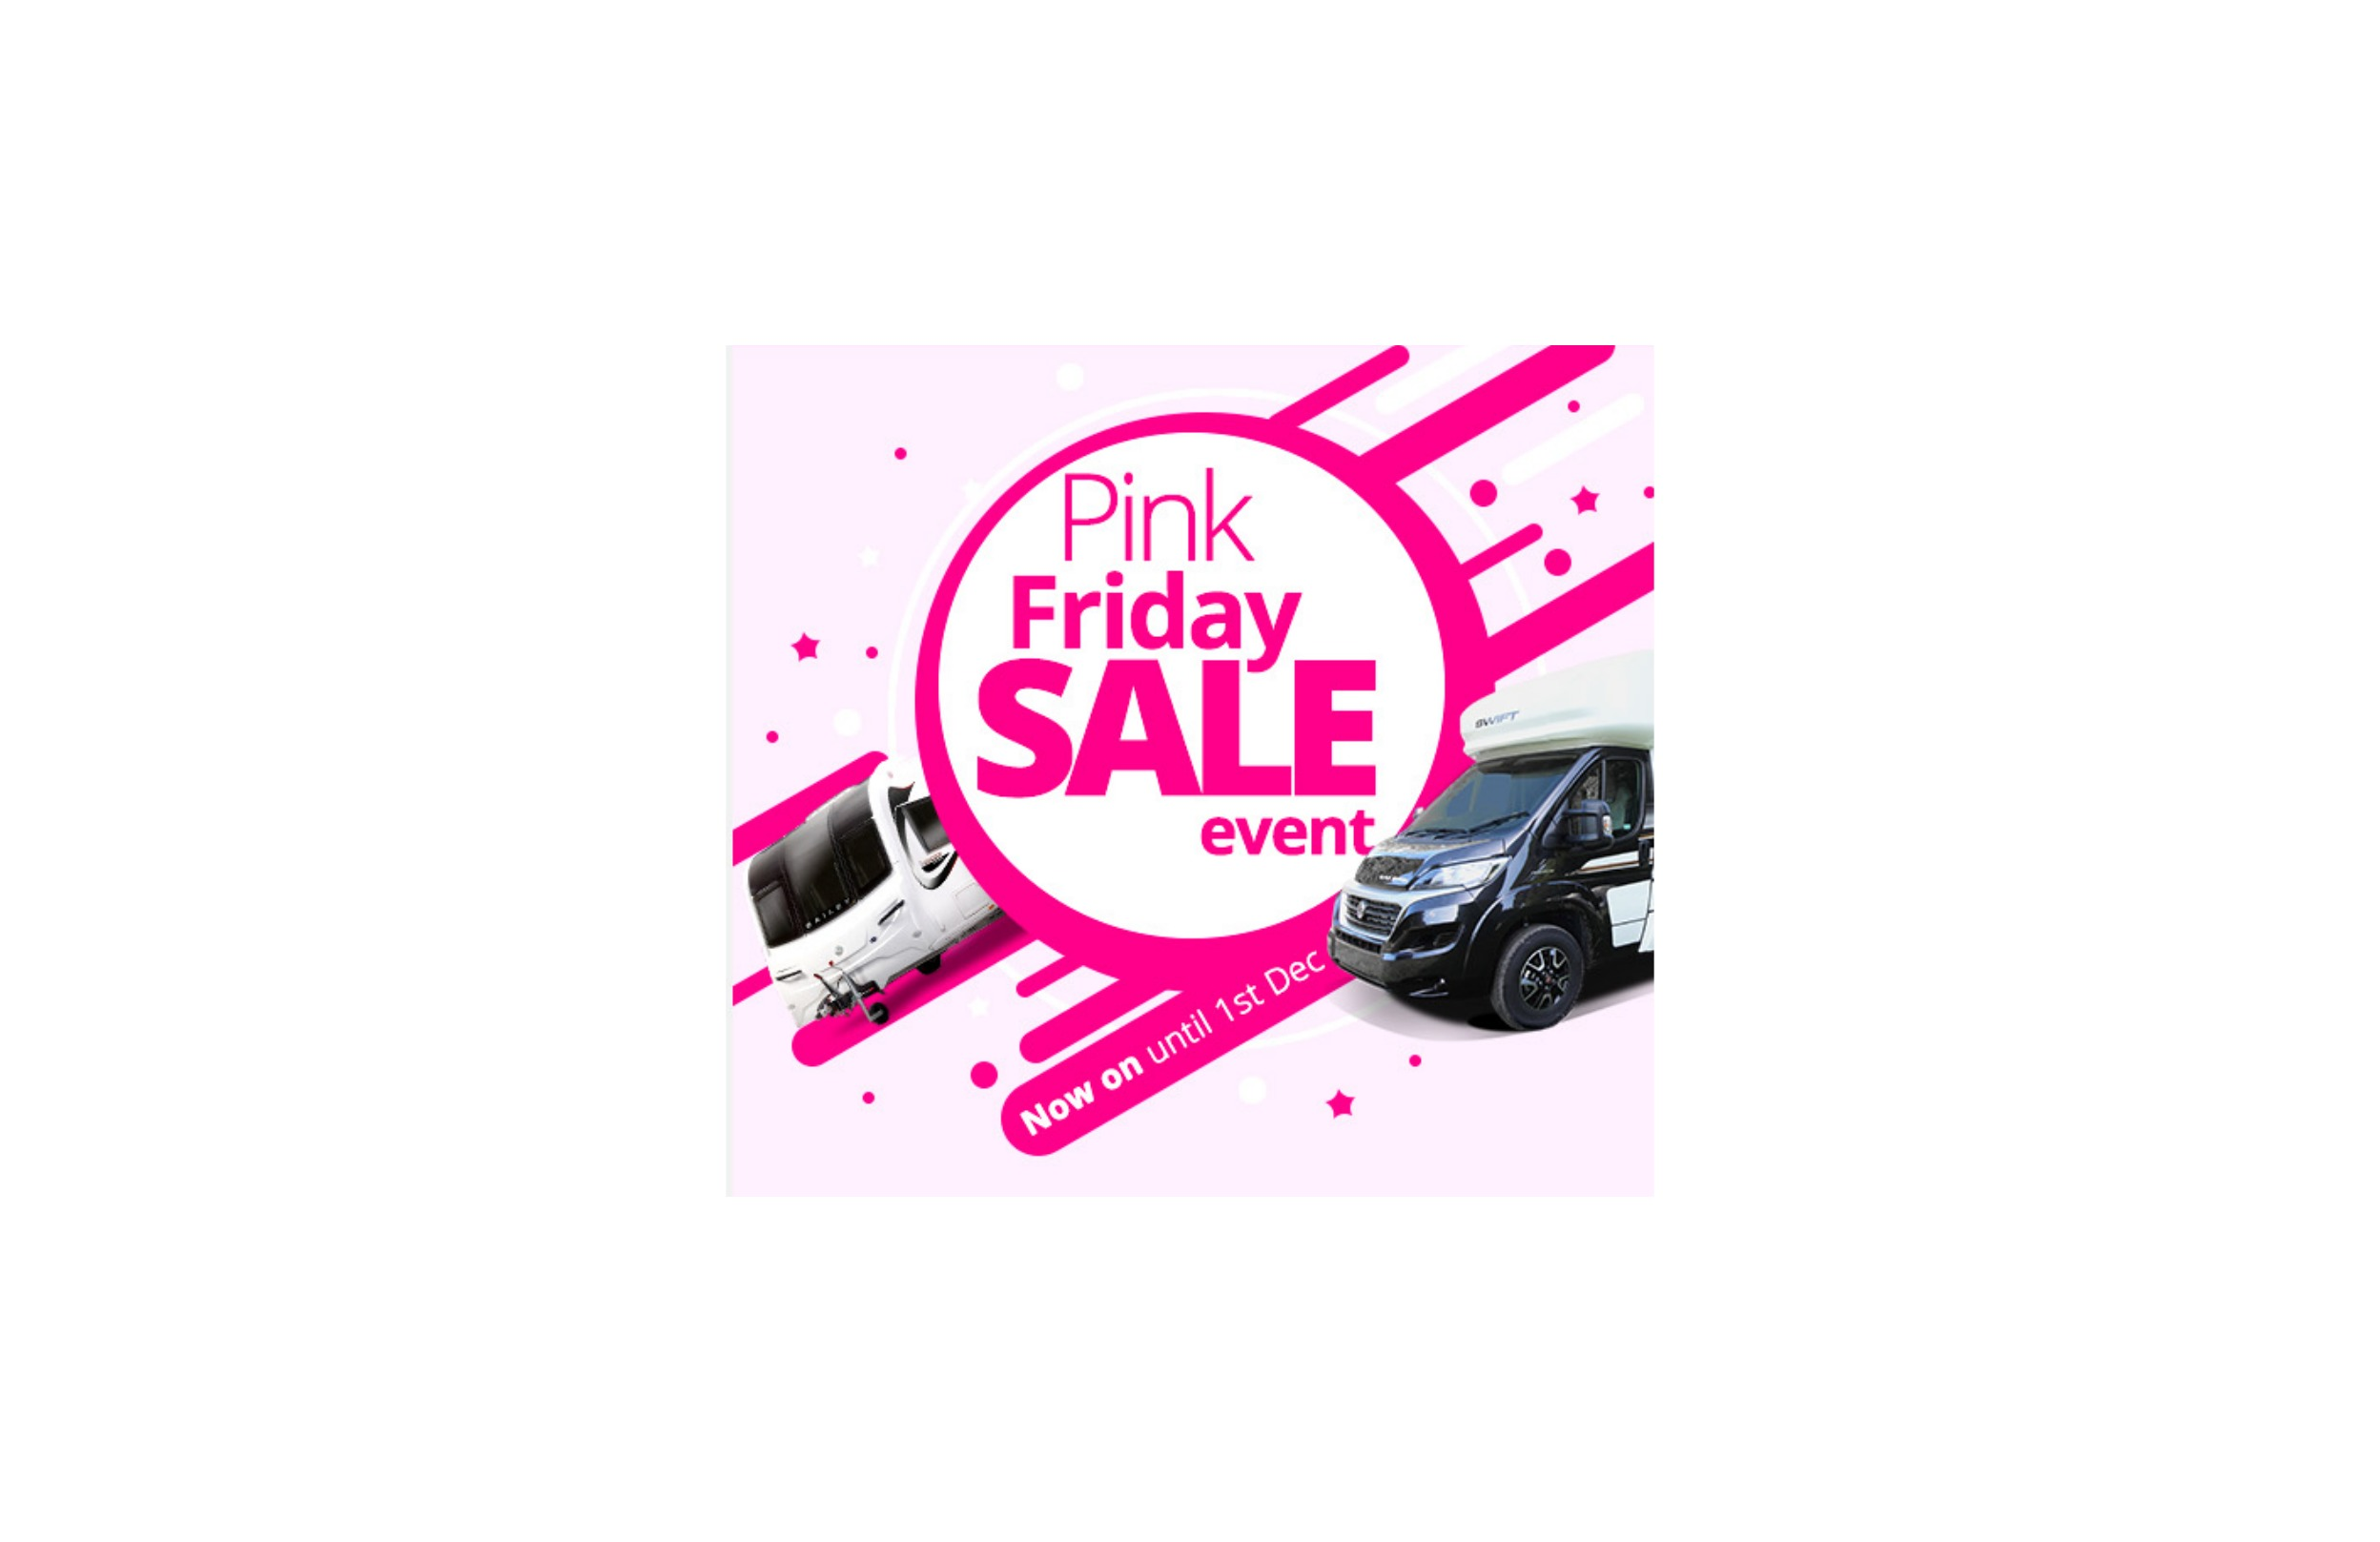 Pink Friday Sale Event - NOW ON